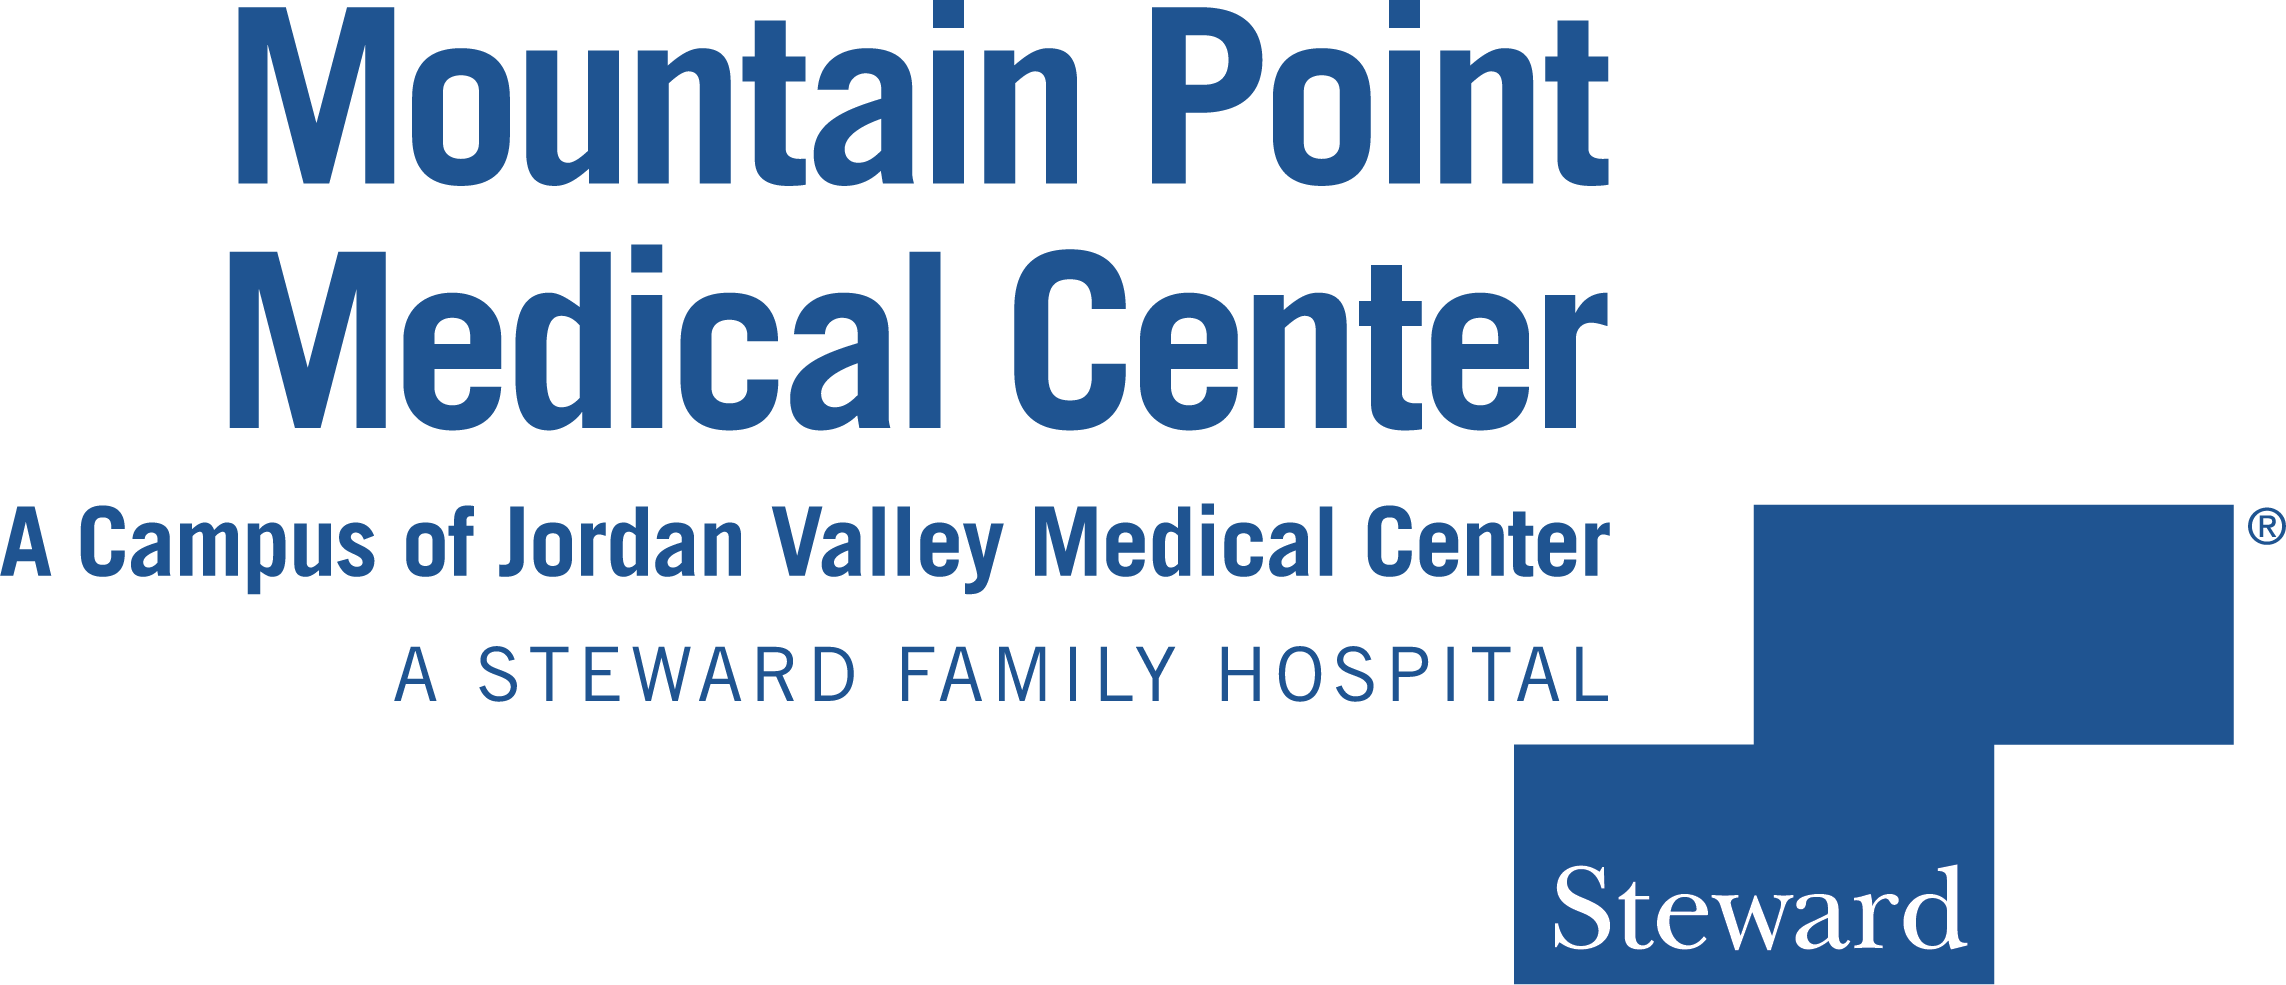 Mountain Point Medical Center a Campus of Jordan Valley Medical Center a Steward Family Hospital